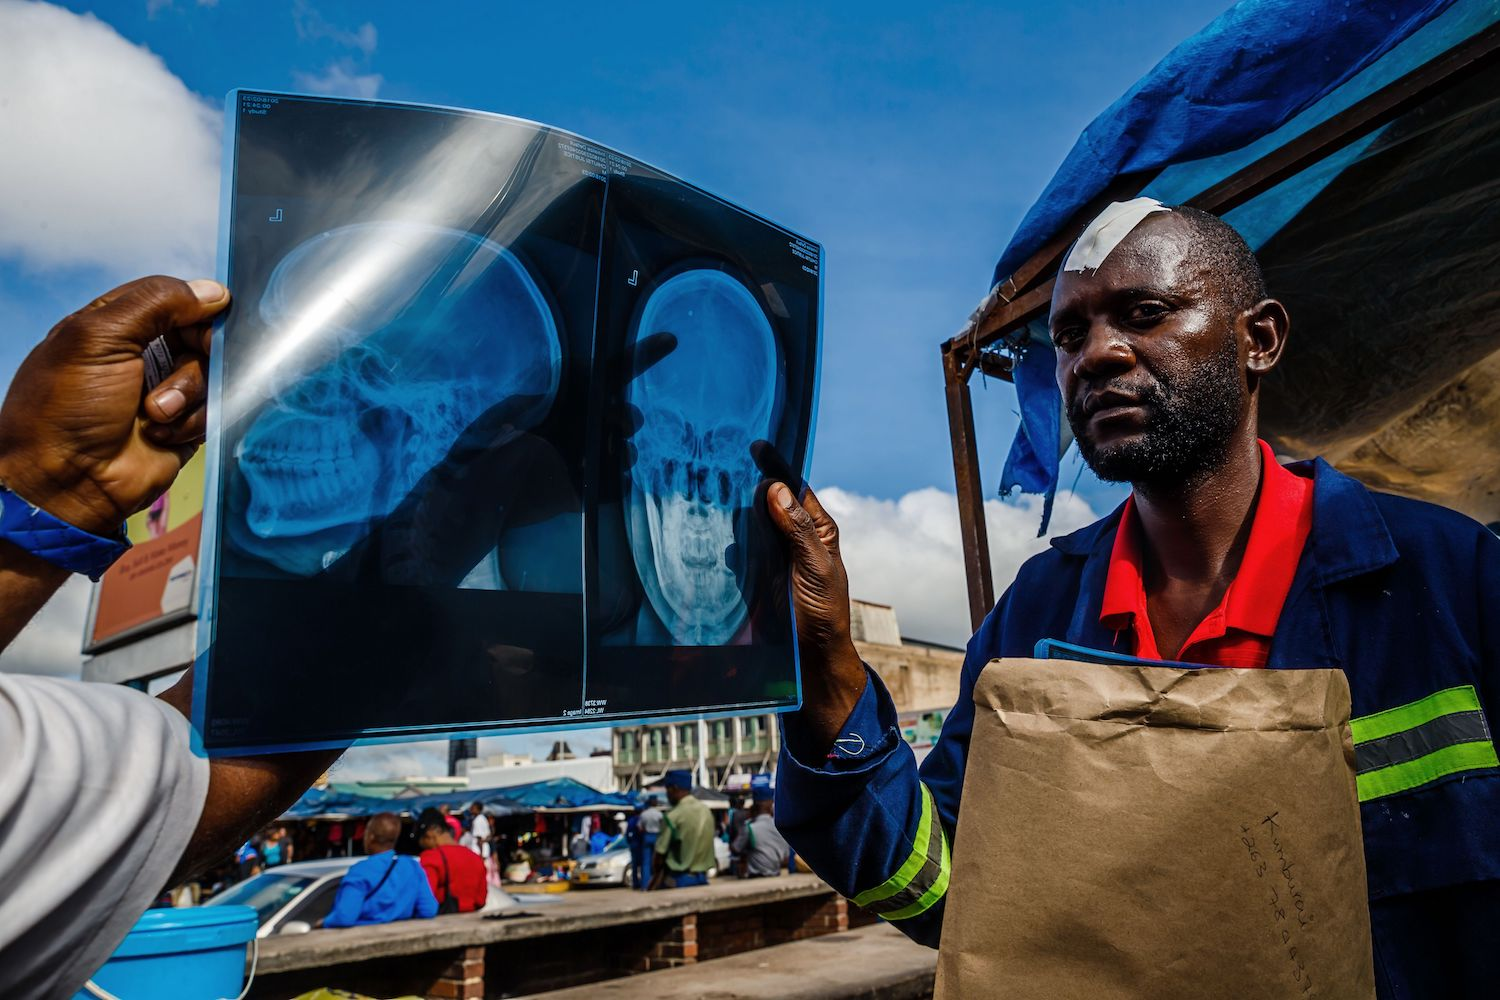 Justice Chiutsi holds an x-ray showing his head injuries outside Harare Central Police Station in Harare on February 23, 2018. Chiutsi, a cellphone vendor was shot by a policeman during clashes between commuters and police blocking commuter buses from enter ng the central business district of Harare. / AFP PHOTO / Jekesai NJIKIZANA        (Photo credit should read JEKESAI NJIKIZANA/AFP/Getty Images)